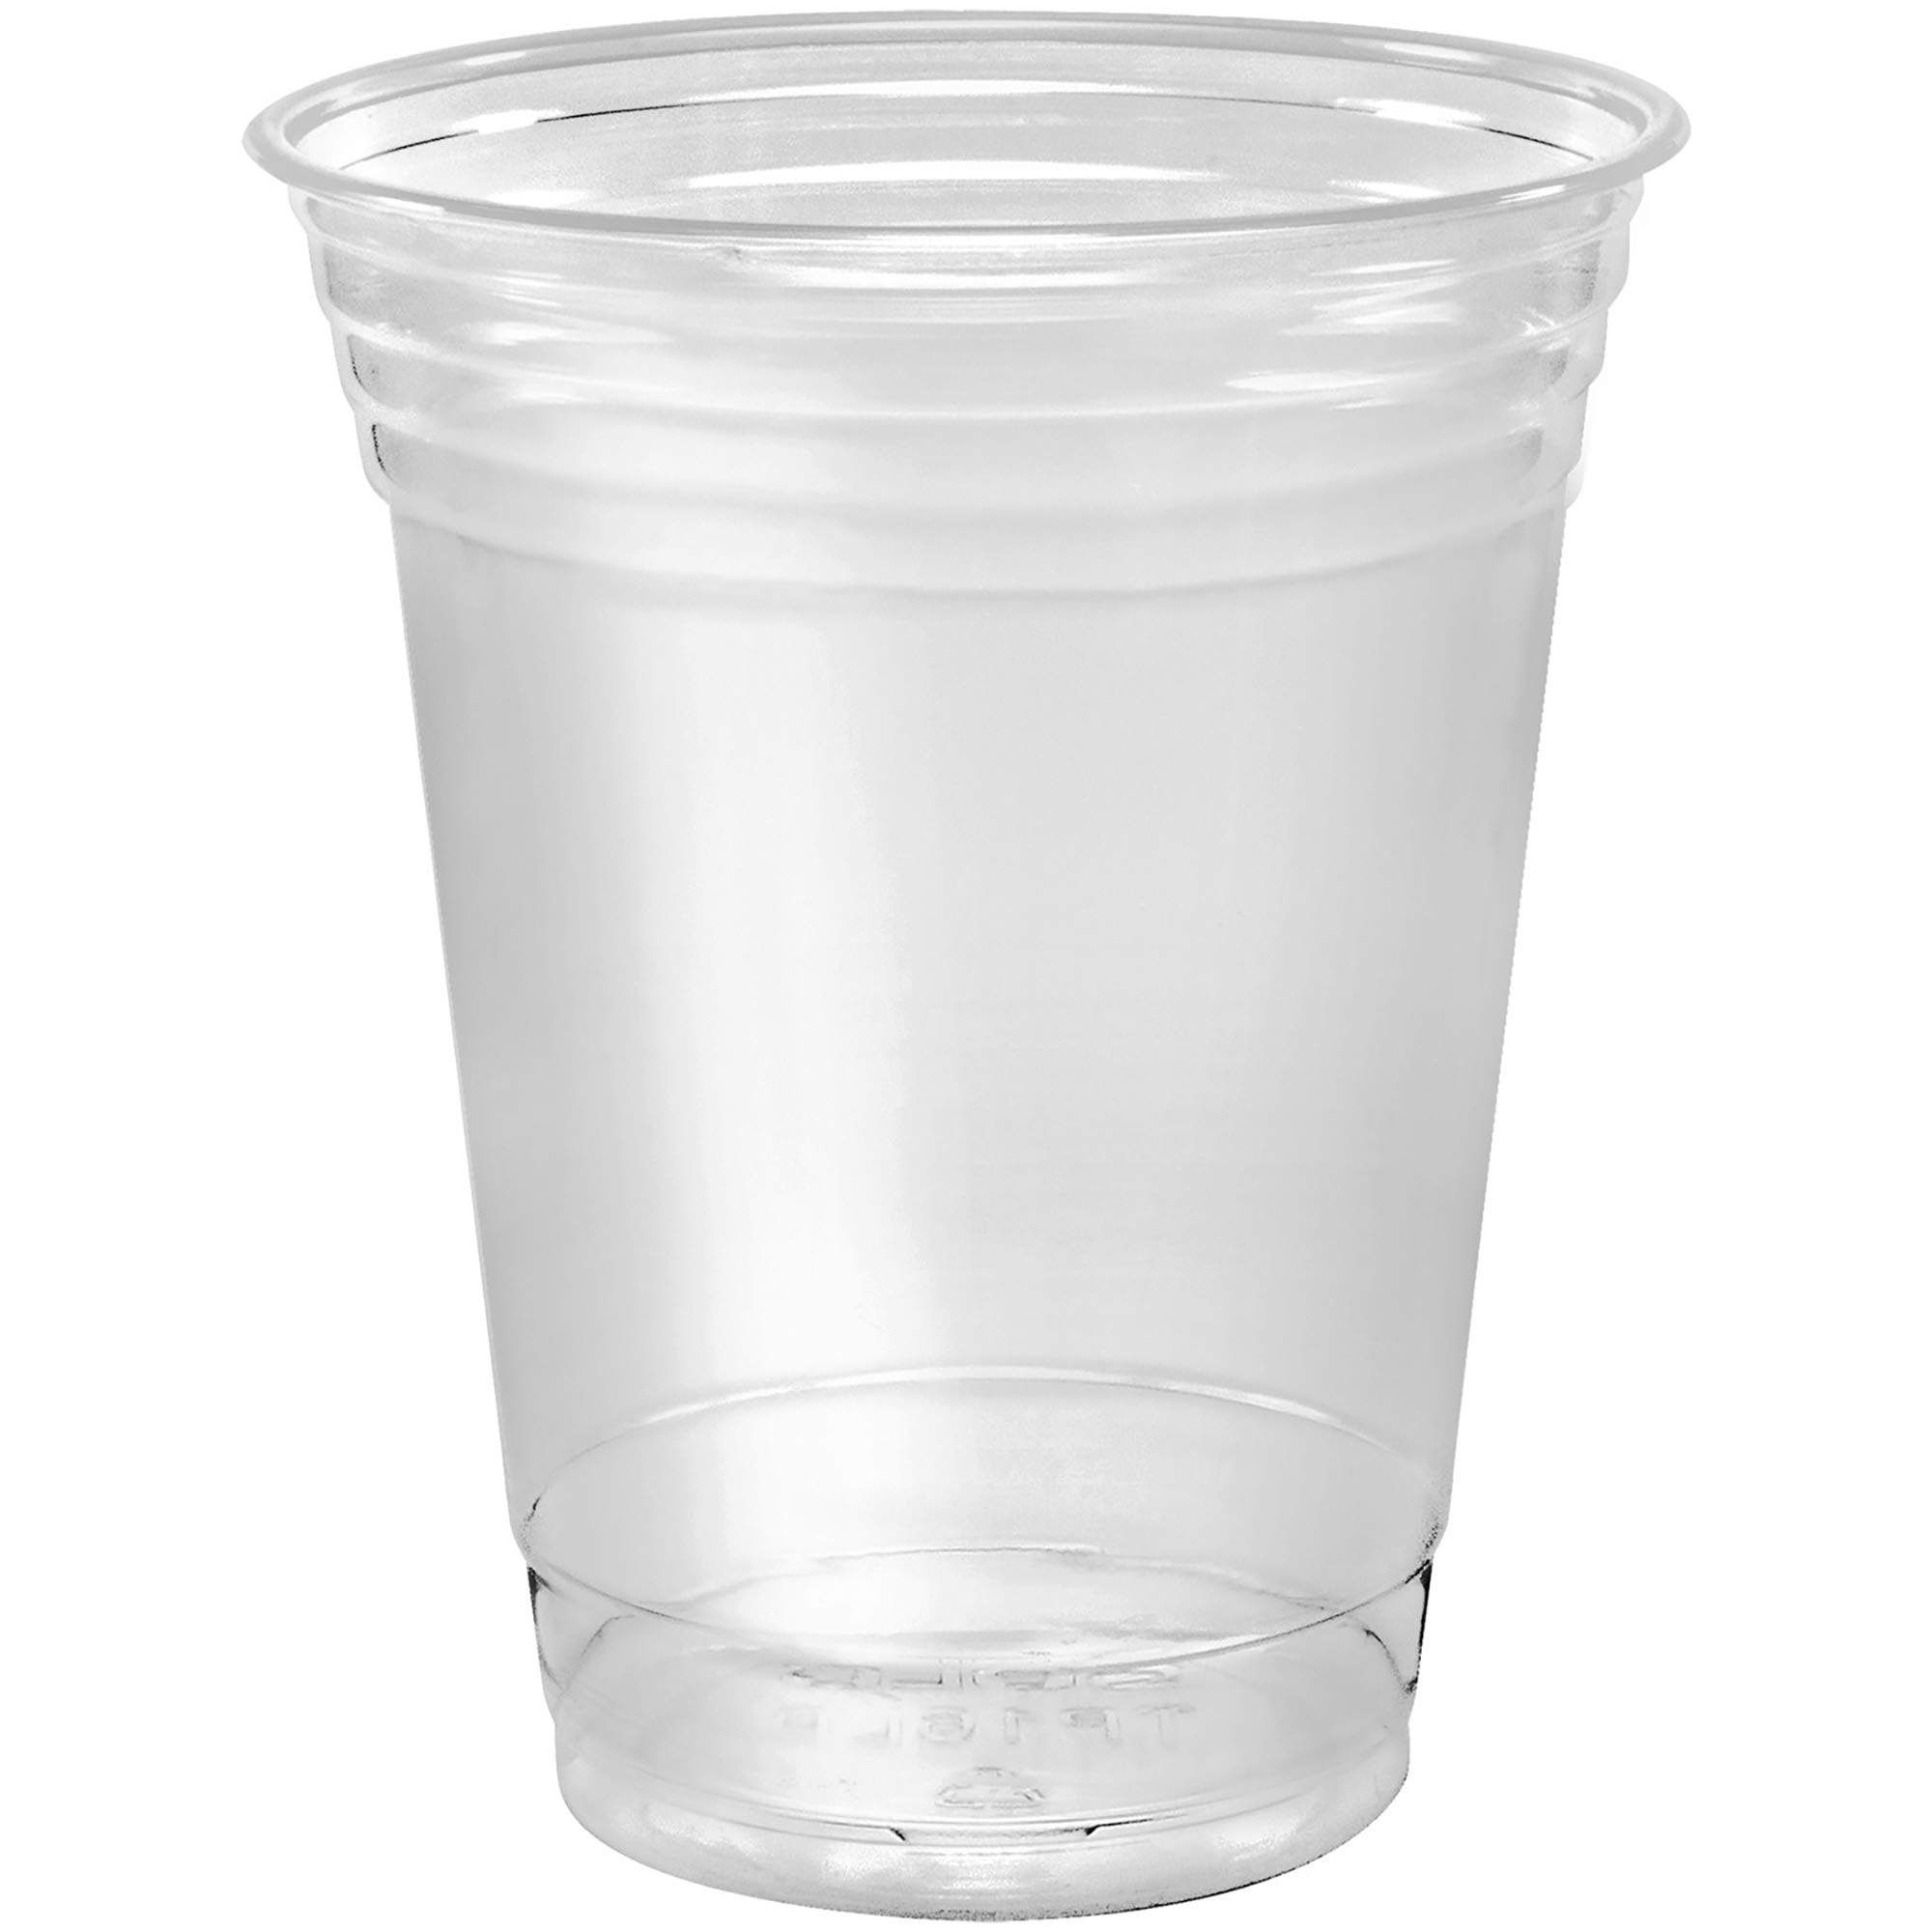 SOLO Cup Company 12 Ounce Solo 100 Piece Company Plastic Party Cold Cups, Clear, 12 Oz by Stack Man